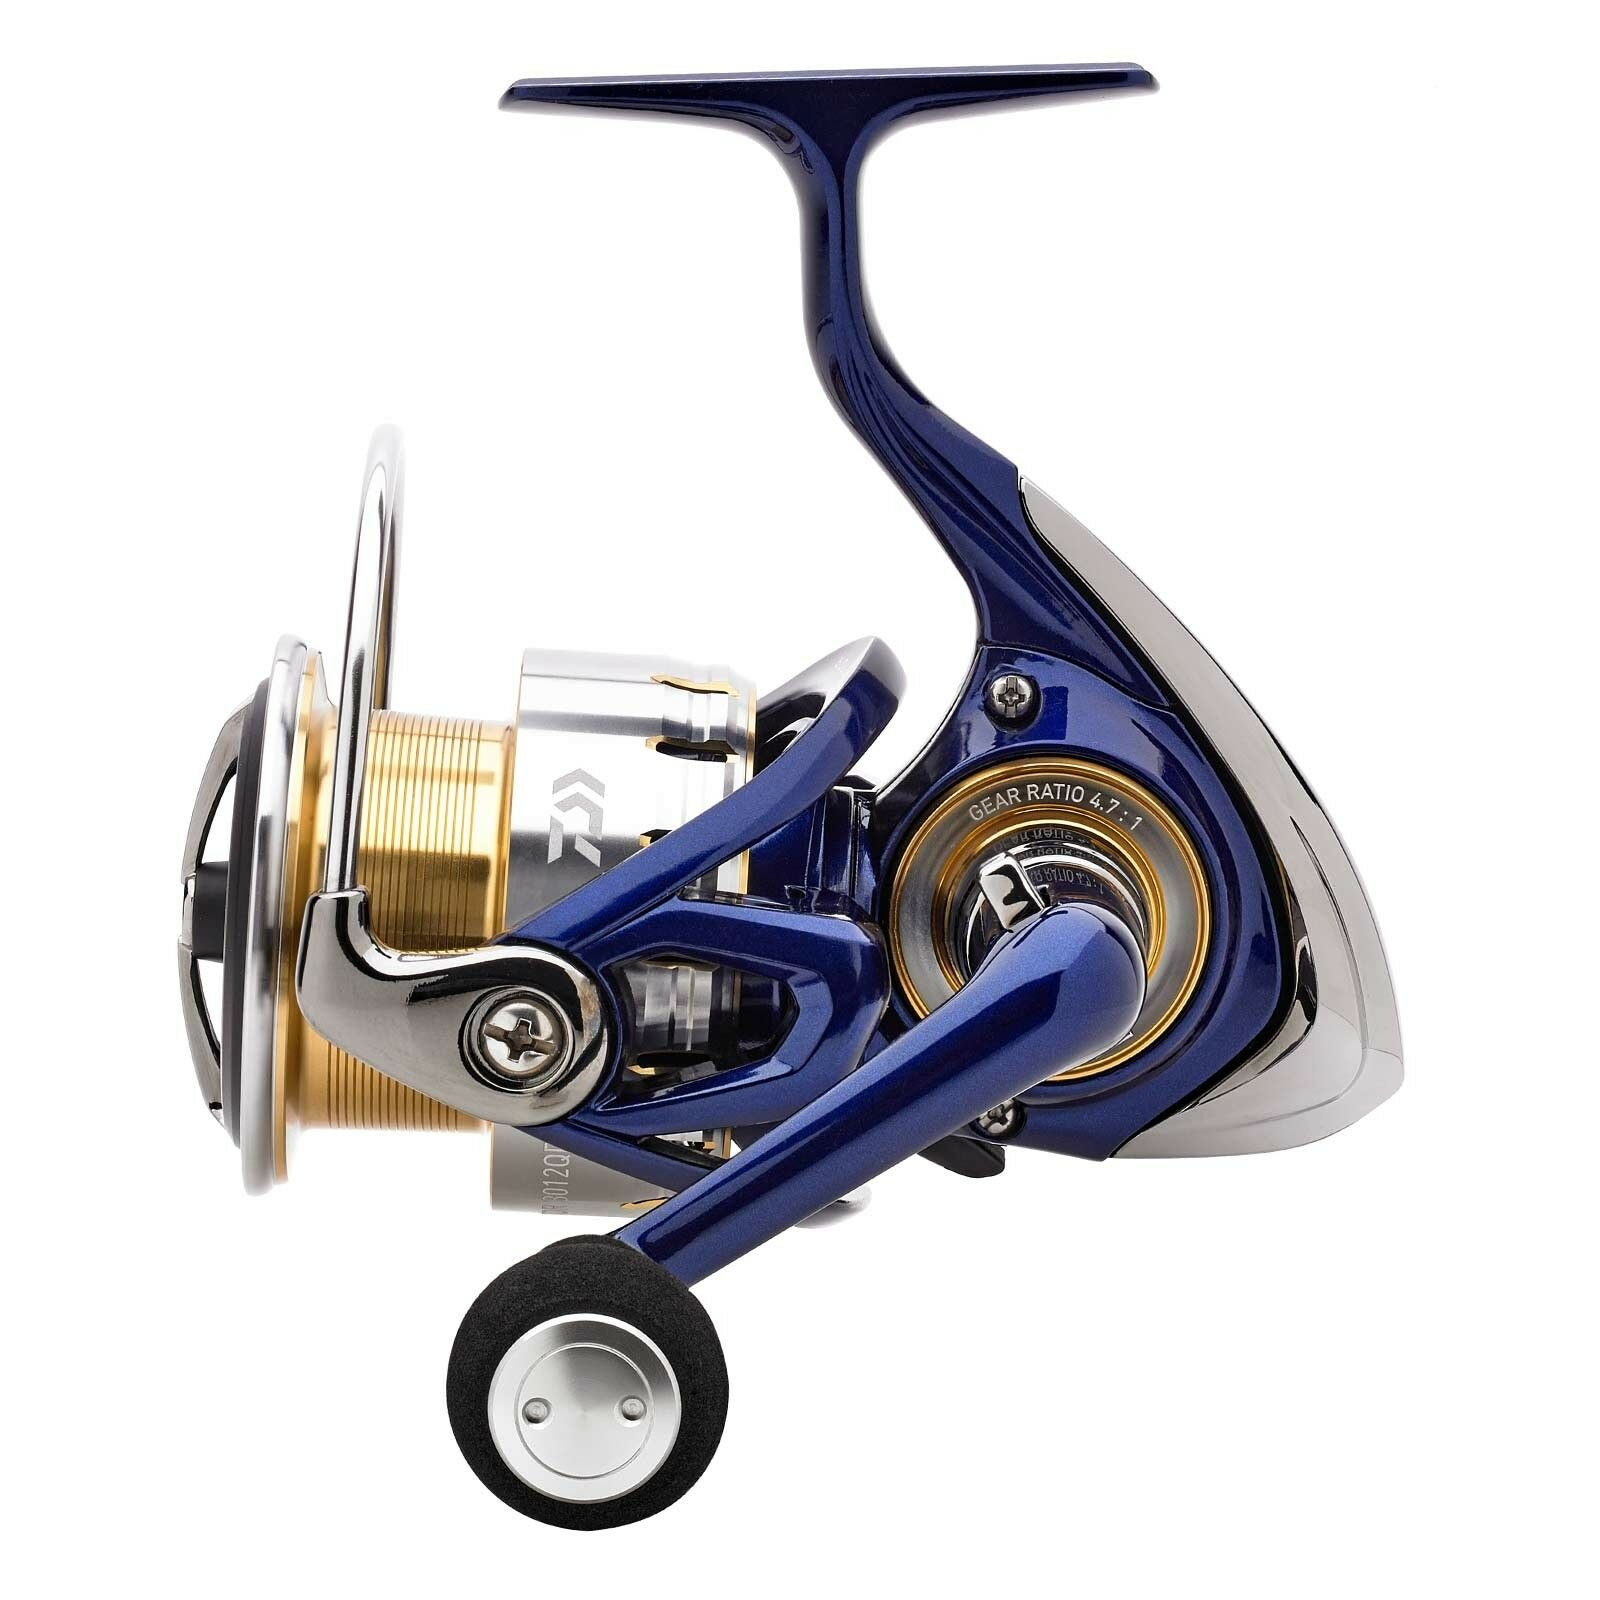 Daiwa Angelrolle - TDR Match & Feeder 3012QD